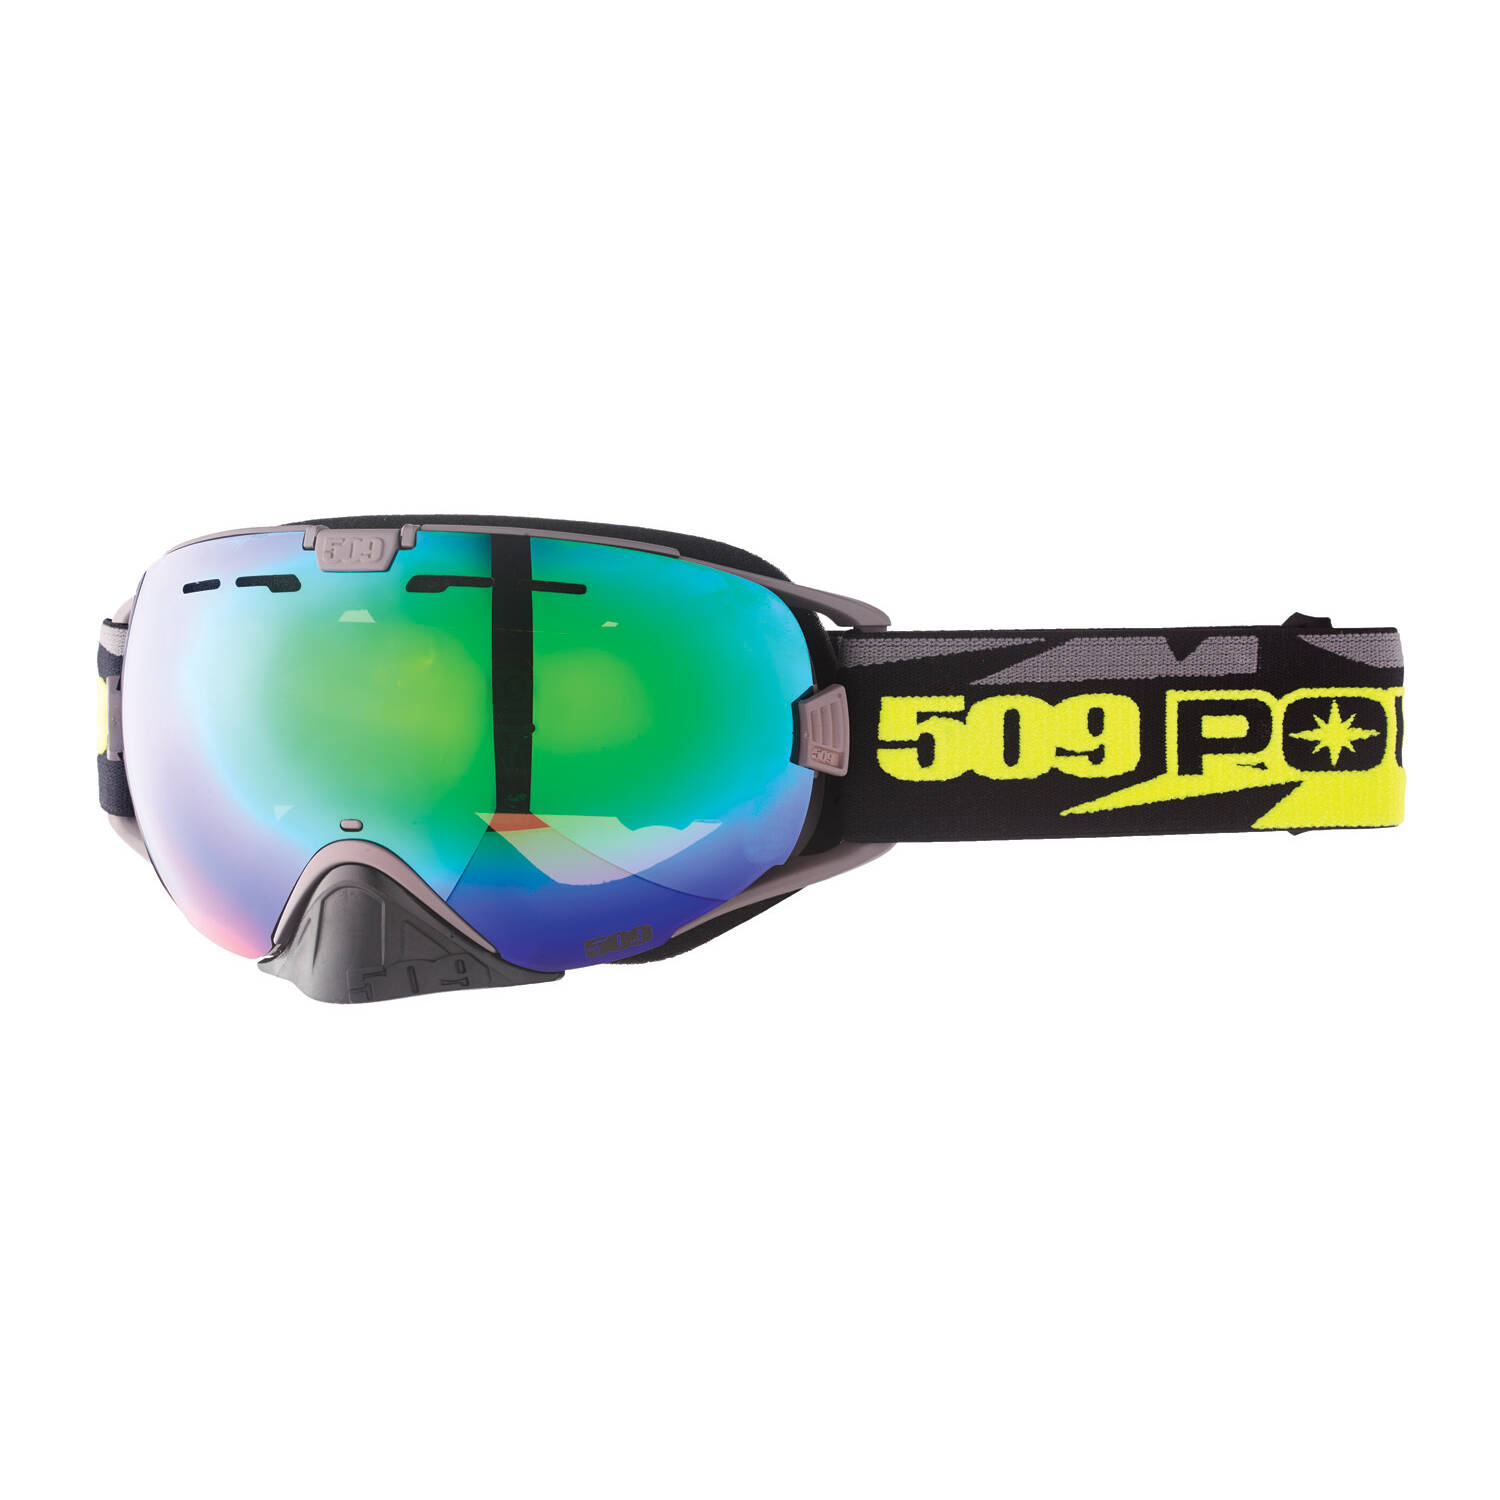 509® Revolver Adjustable Snow Goggles with Pivot Lens Lock Technology, Lime